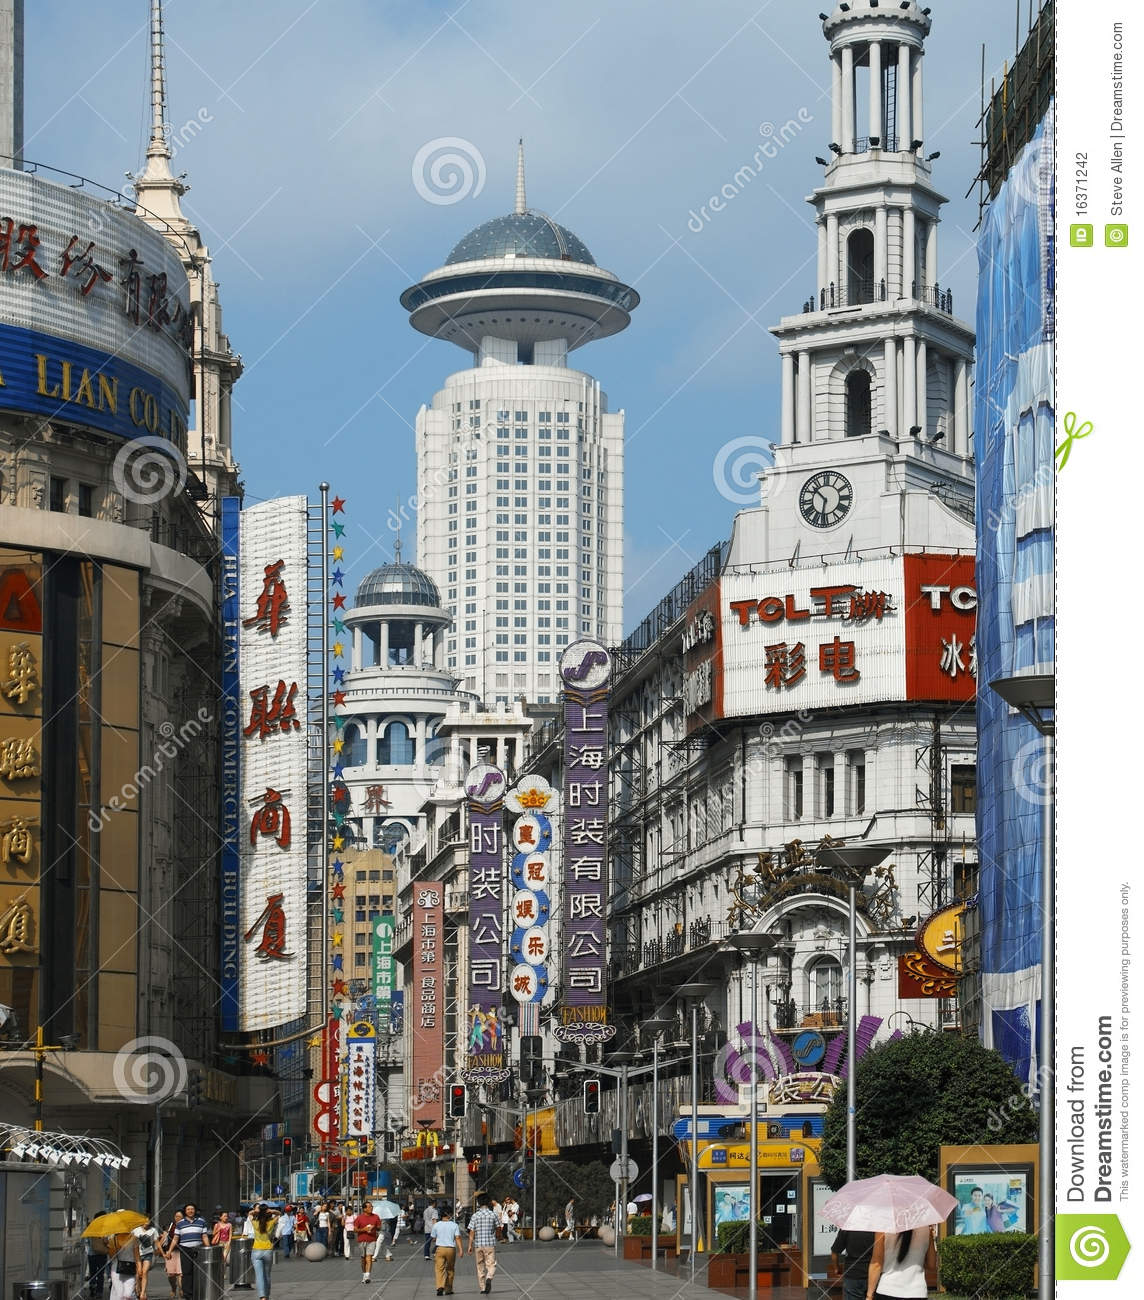 Shanghai - Nanjing Road - China